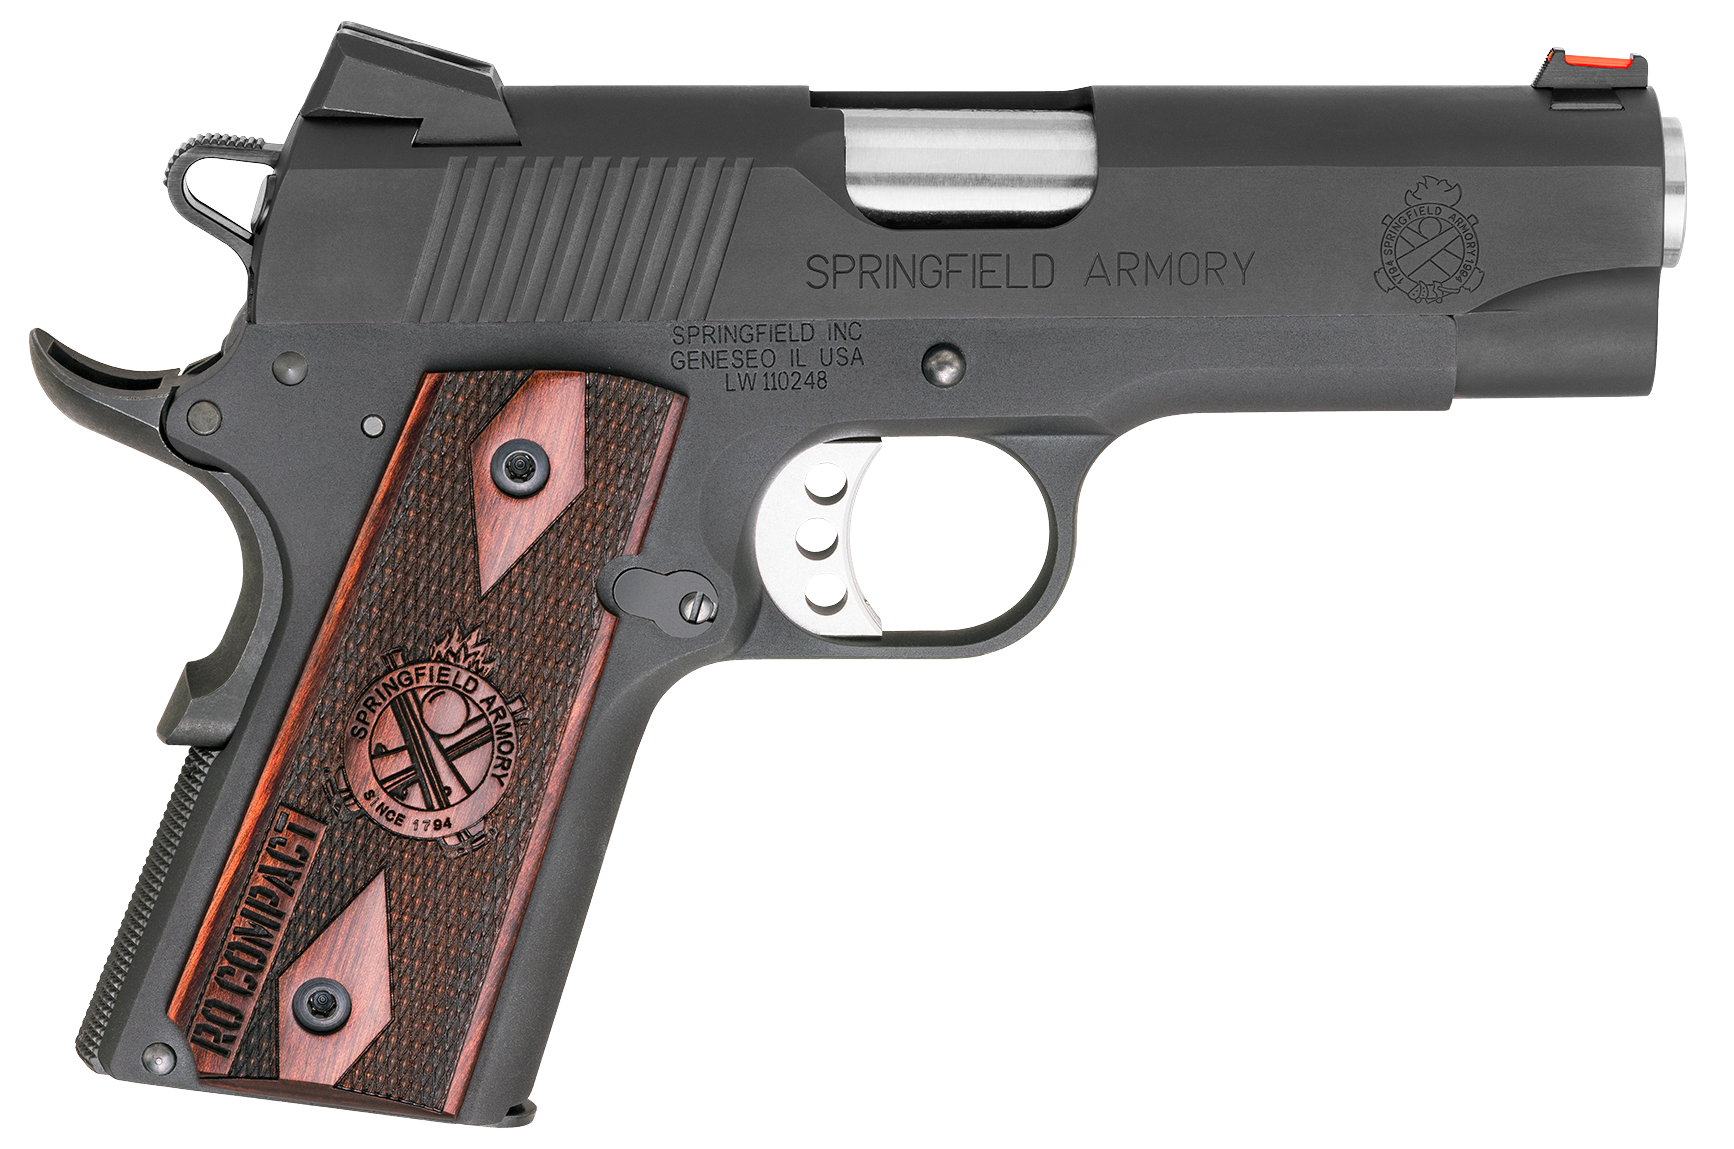 Springfield Armory® 1911 Range Officer® Compact Pistol - .45 ACP 6+1 - 4